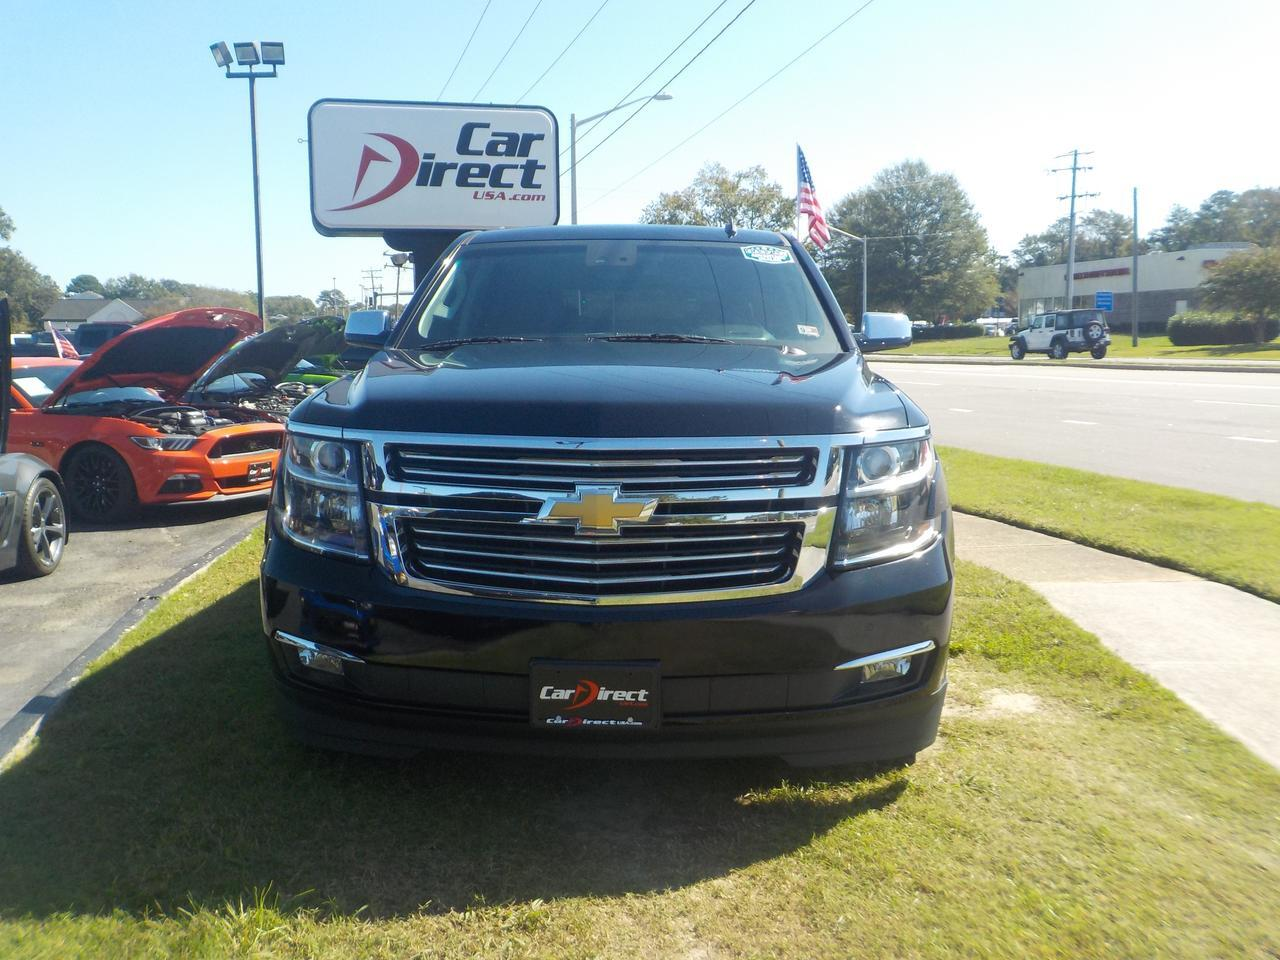 2015 CHEVROLET TAHOE LTZ 4X4, LEATHER, HEATED/COOLED SEATS, 3RD ROW, NAV, SUNROOF, REMOTE START, BACKUP CAM,CLEAN CARFAX! Virginia Beach VA